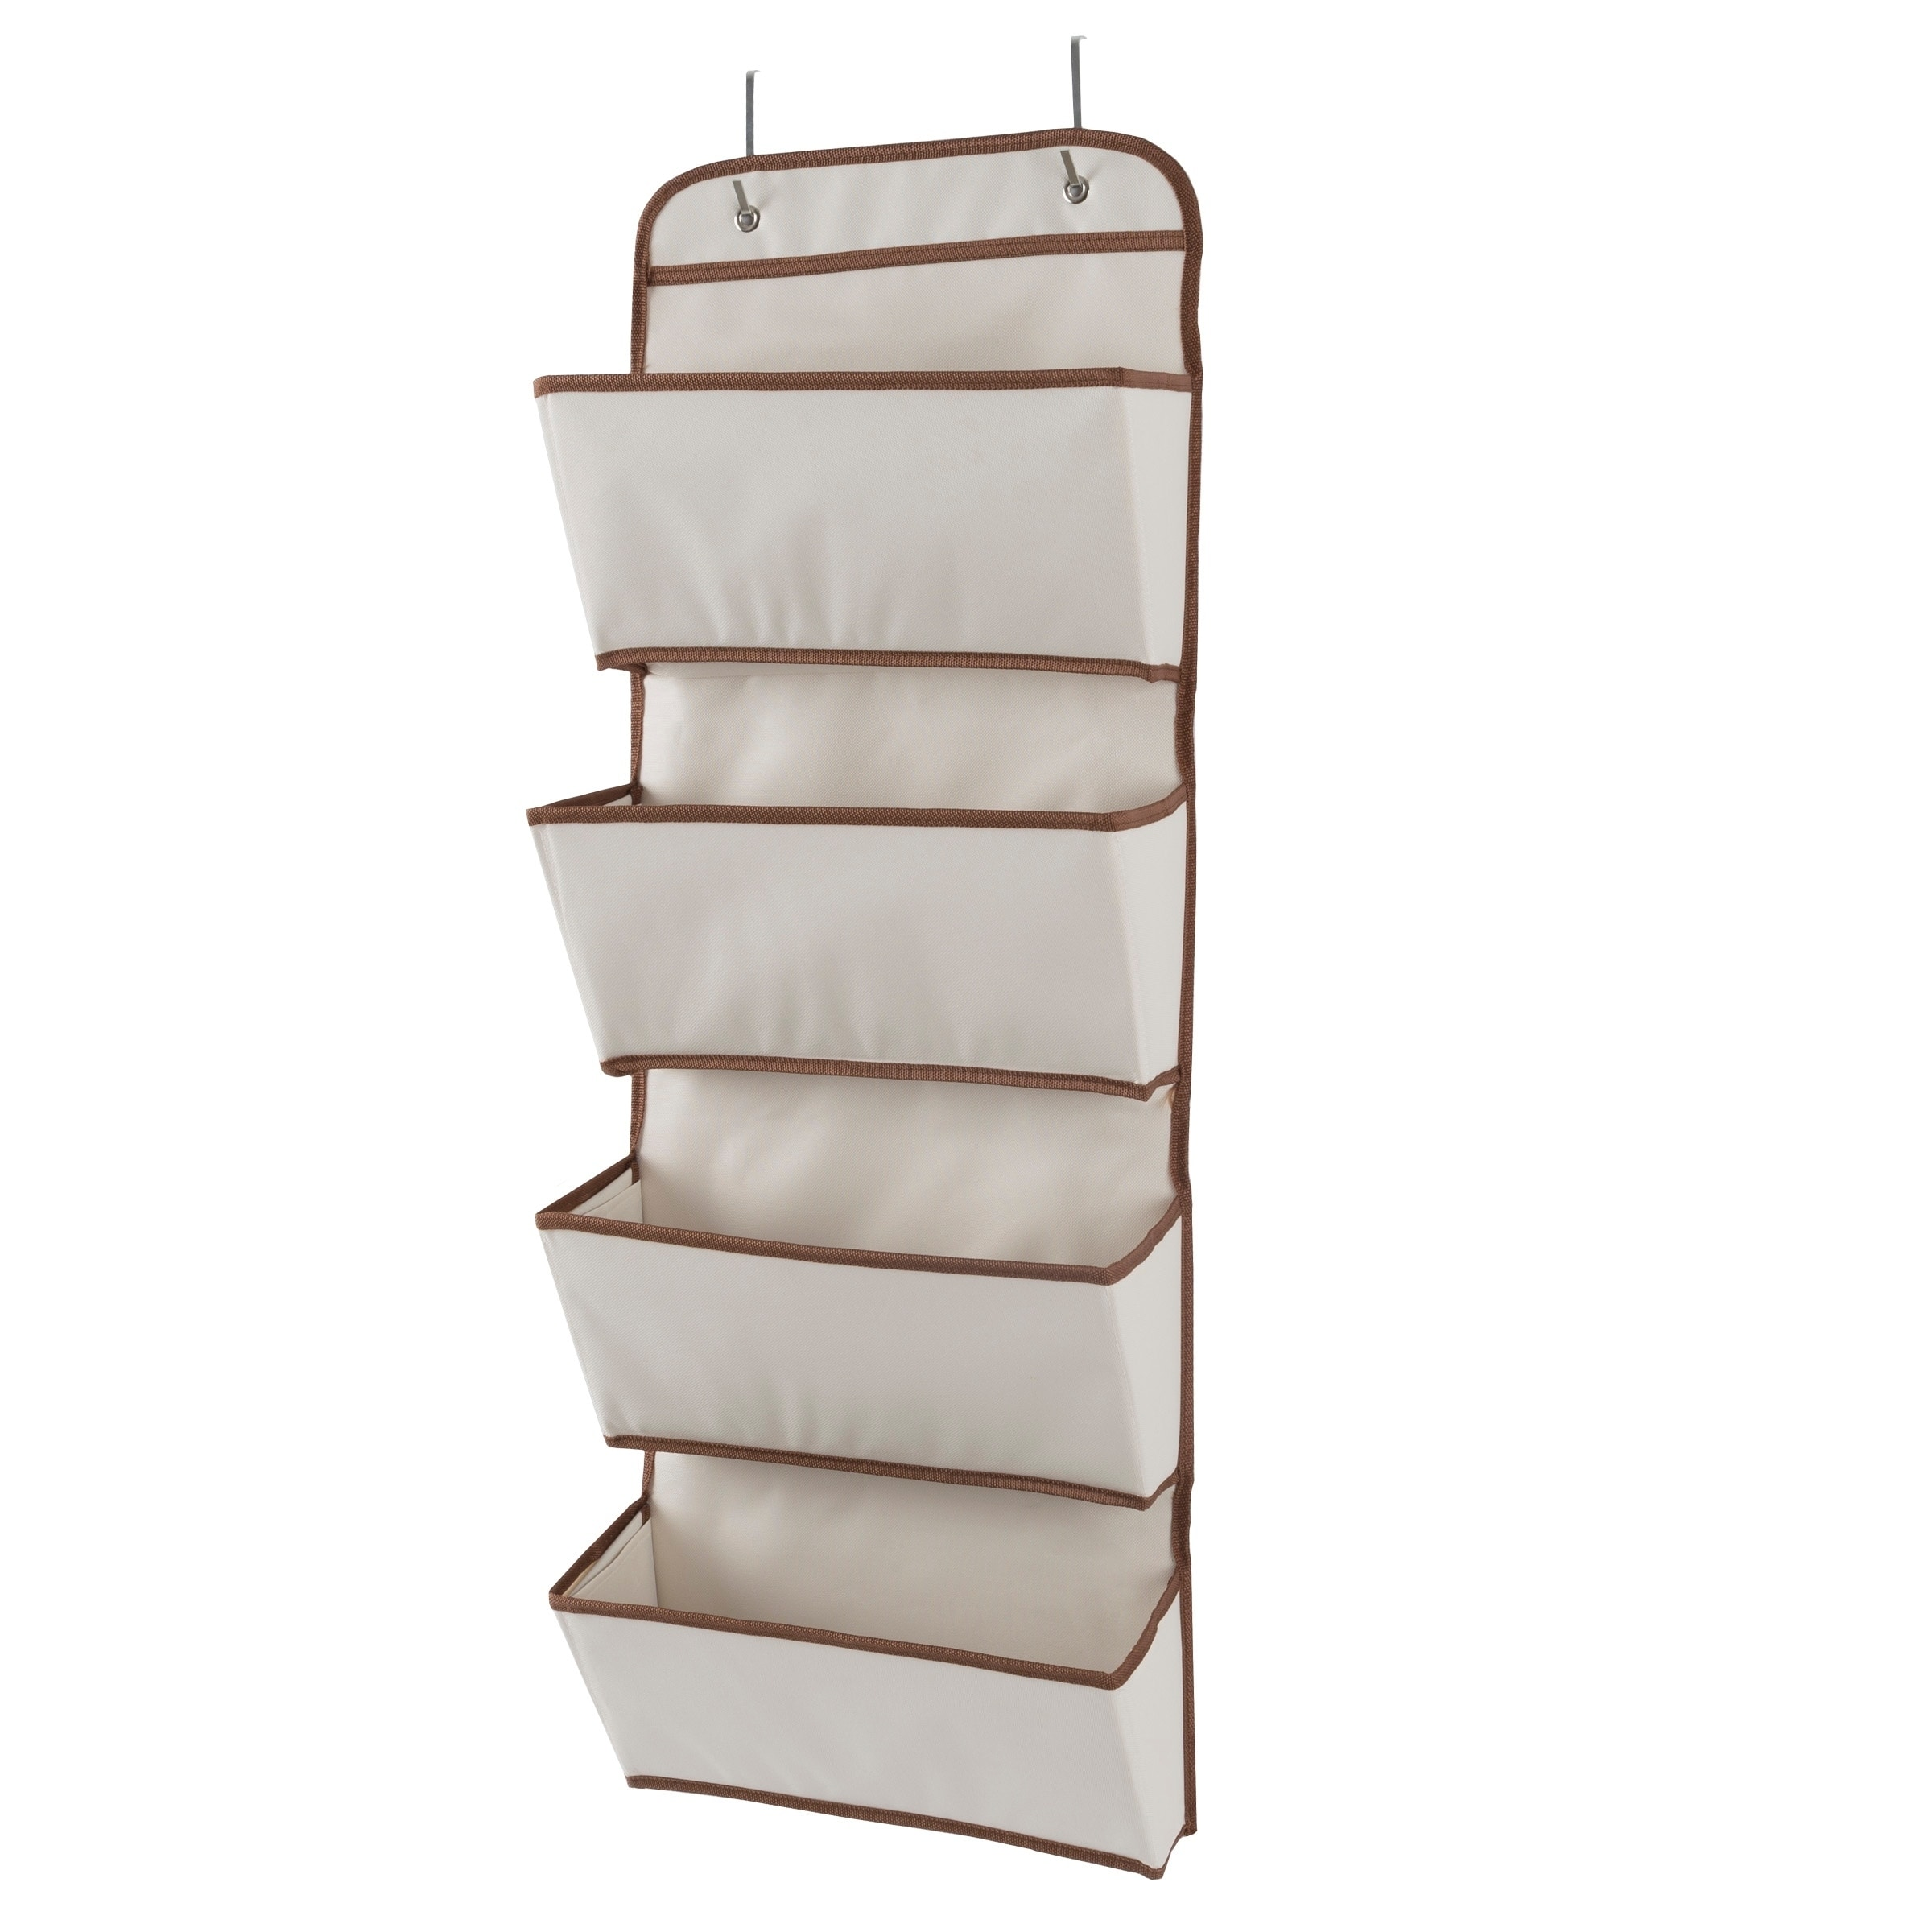 Over The Door Organizer 4 Pocket Hanging Storage Saves Space For